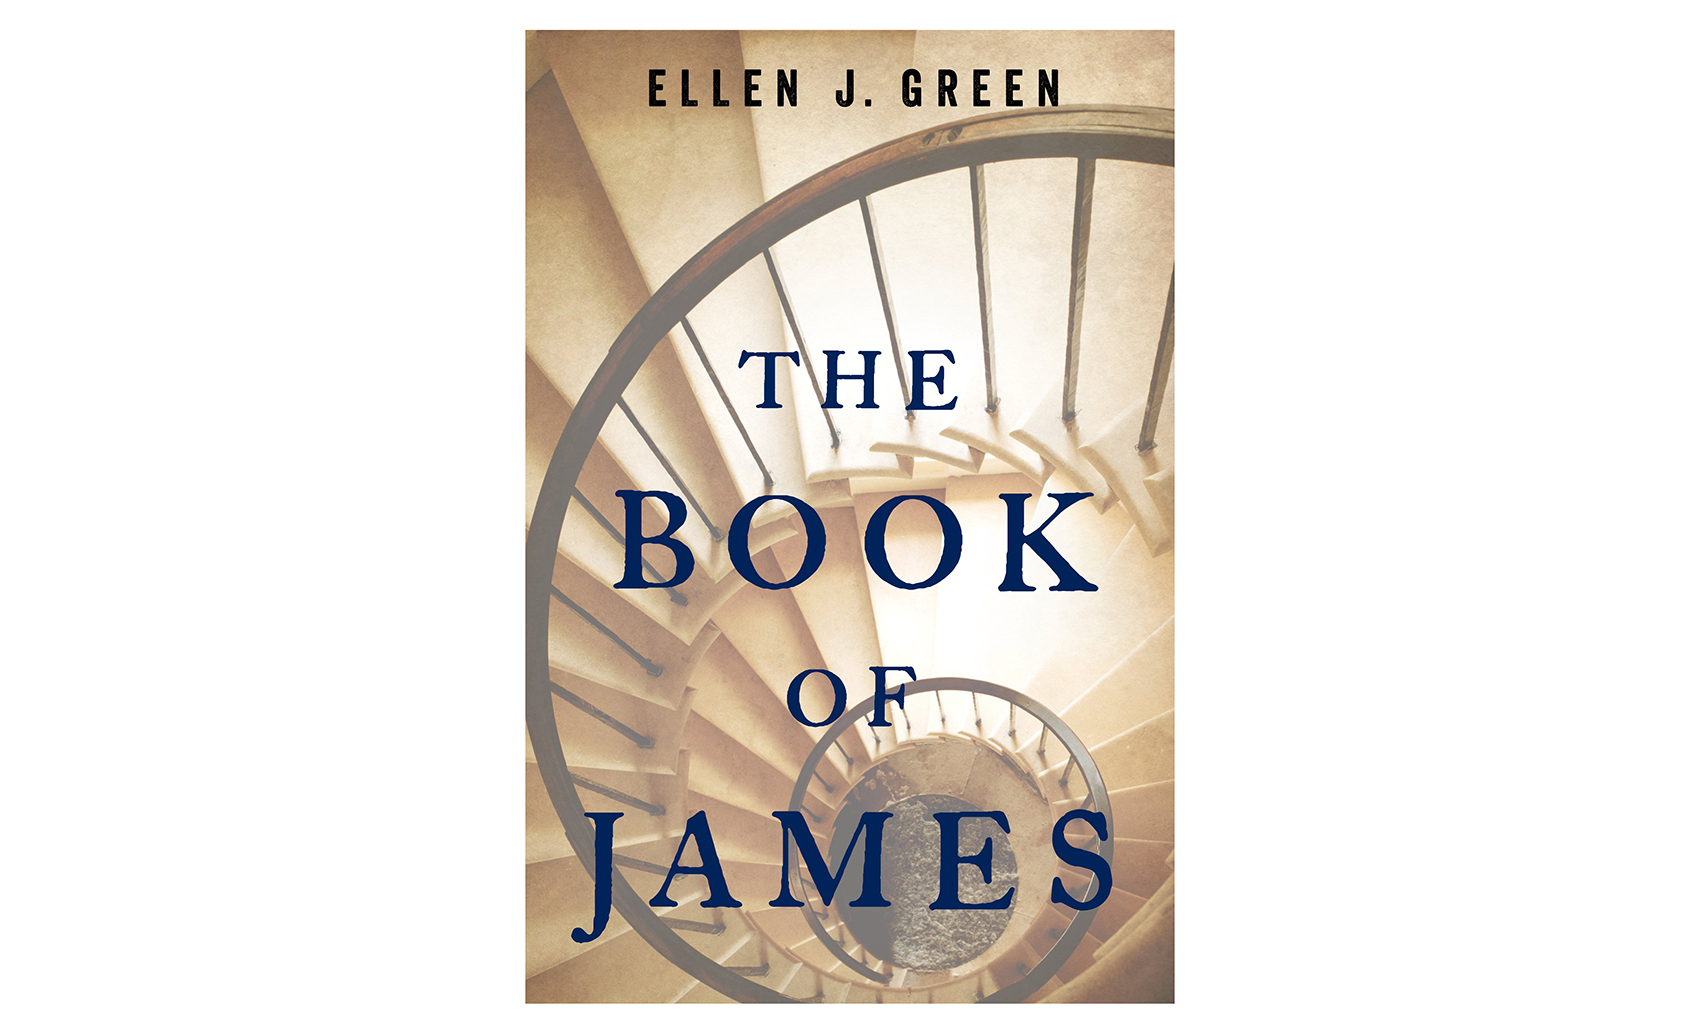 book-of-james-ellen-green